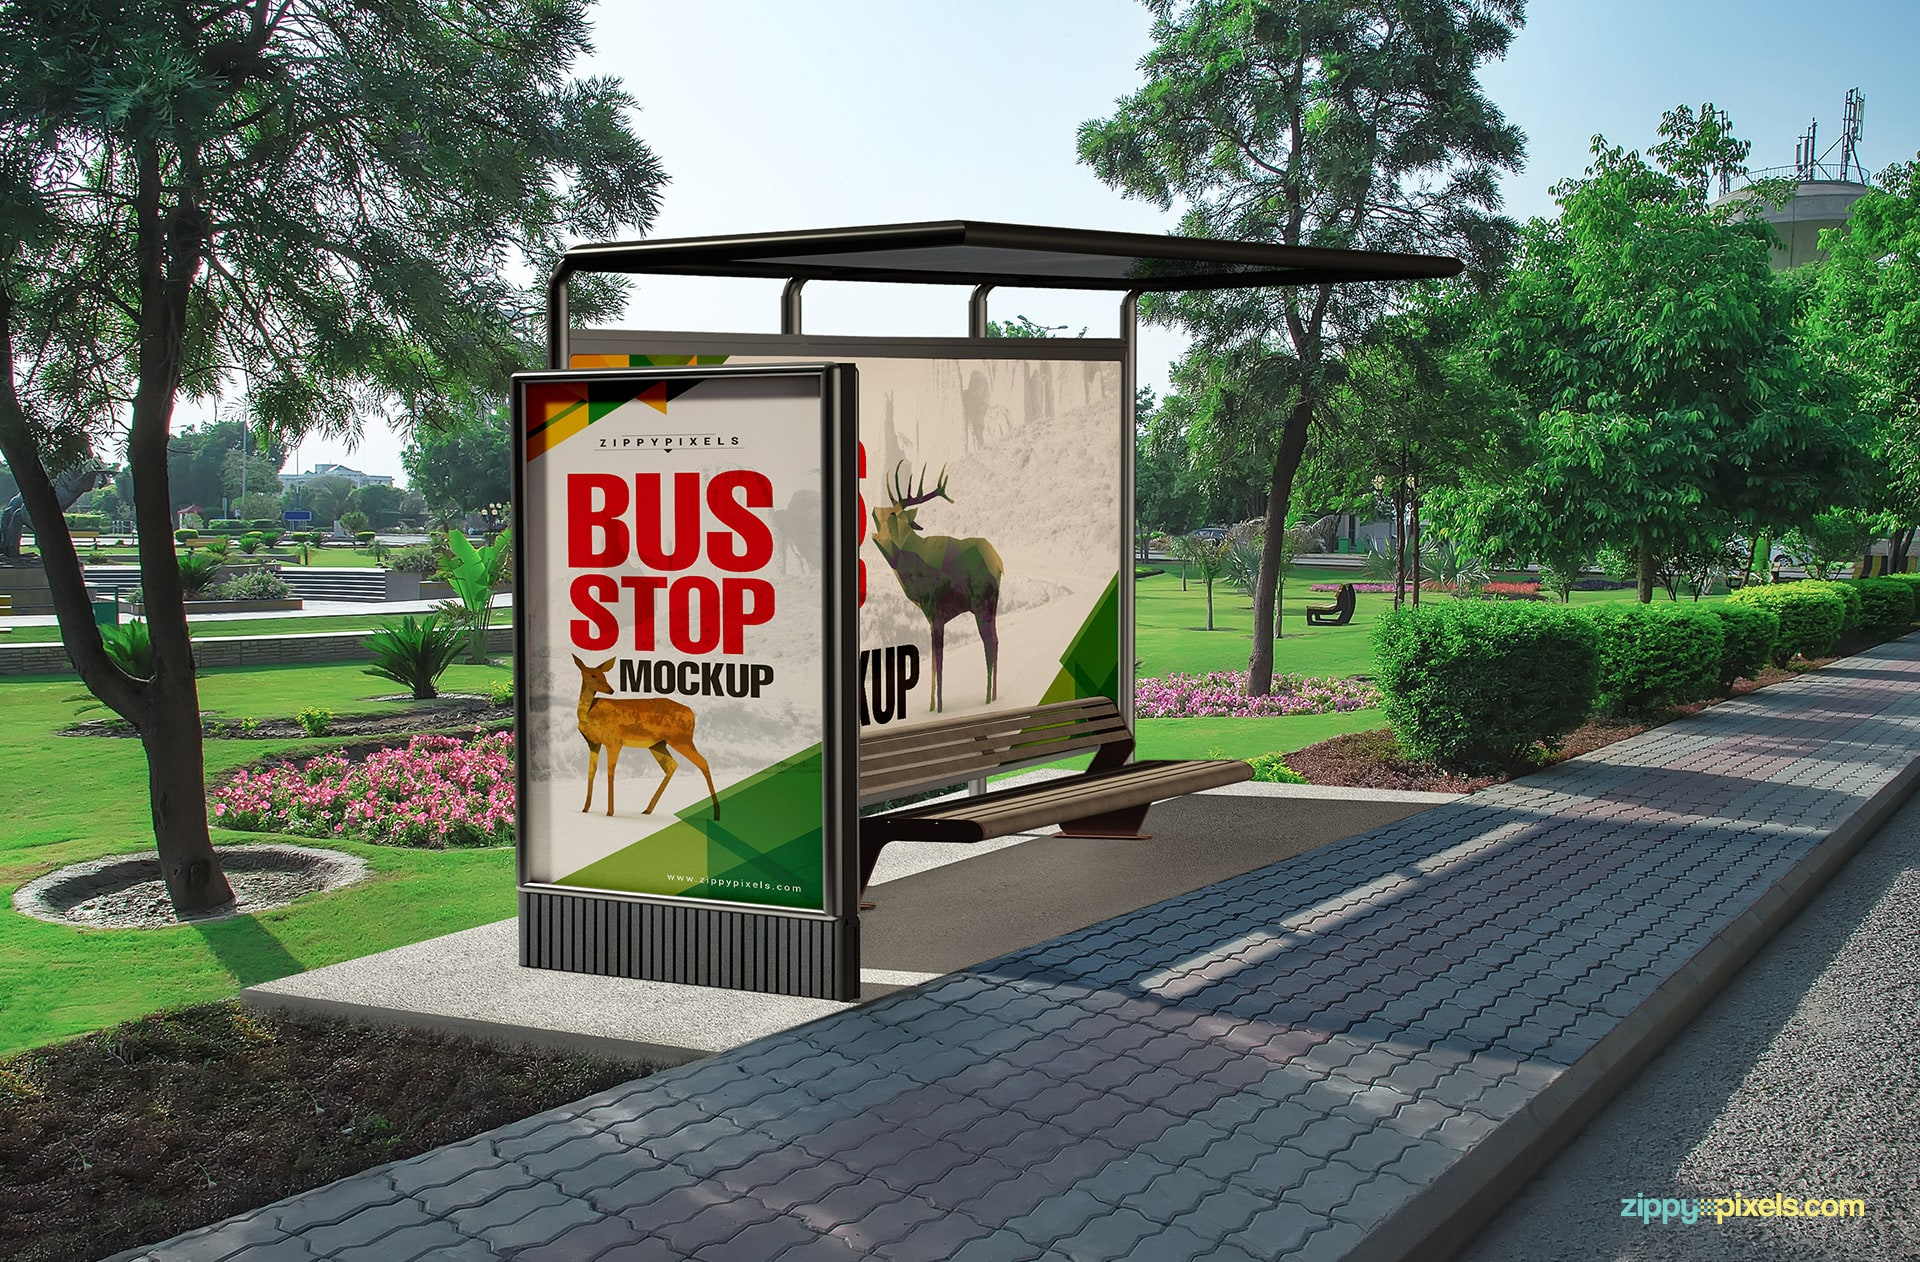 Bus stop mockup paired with a remarkable view